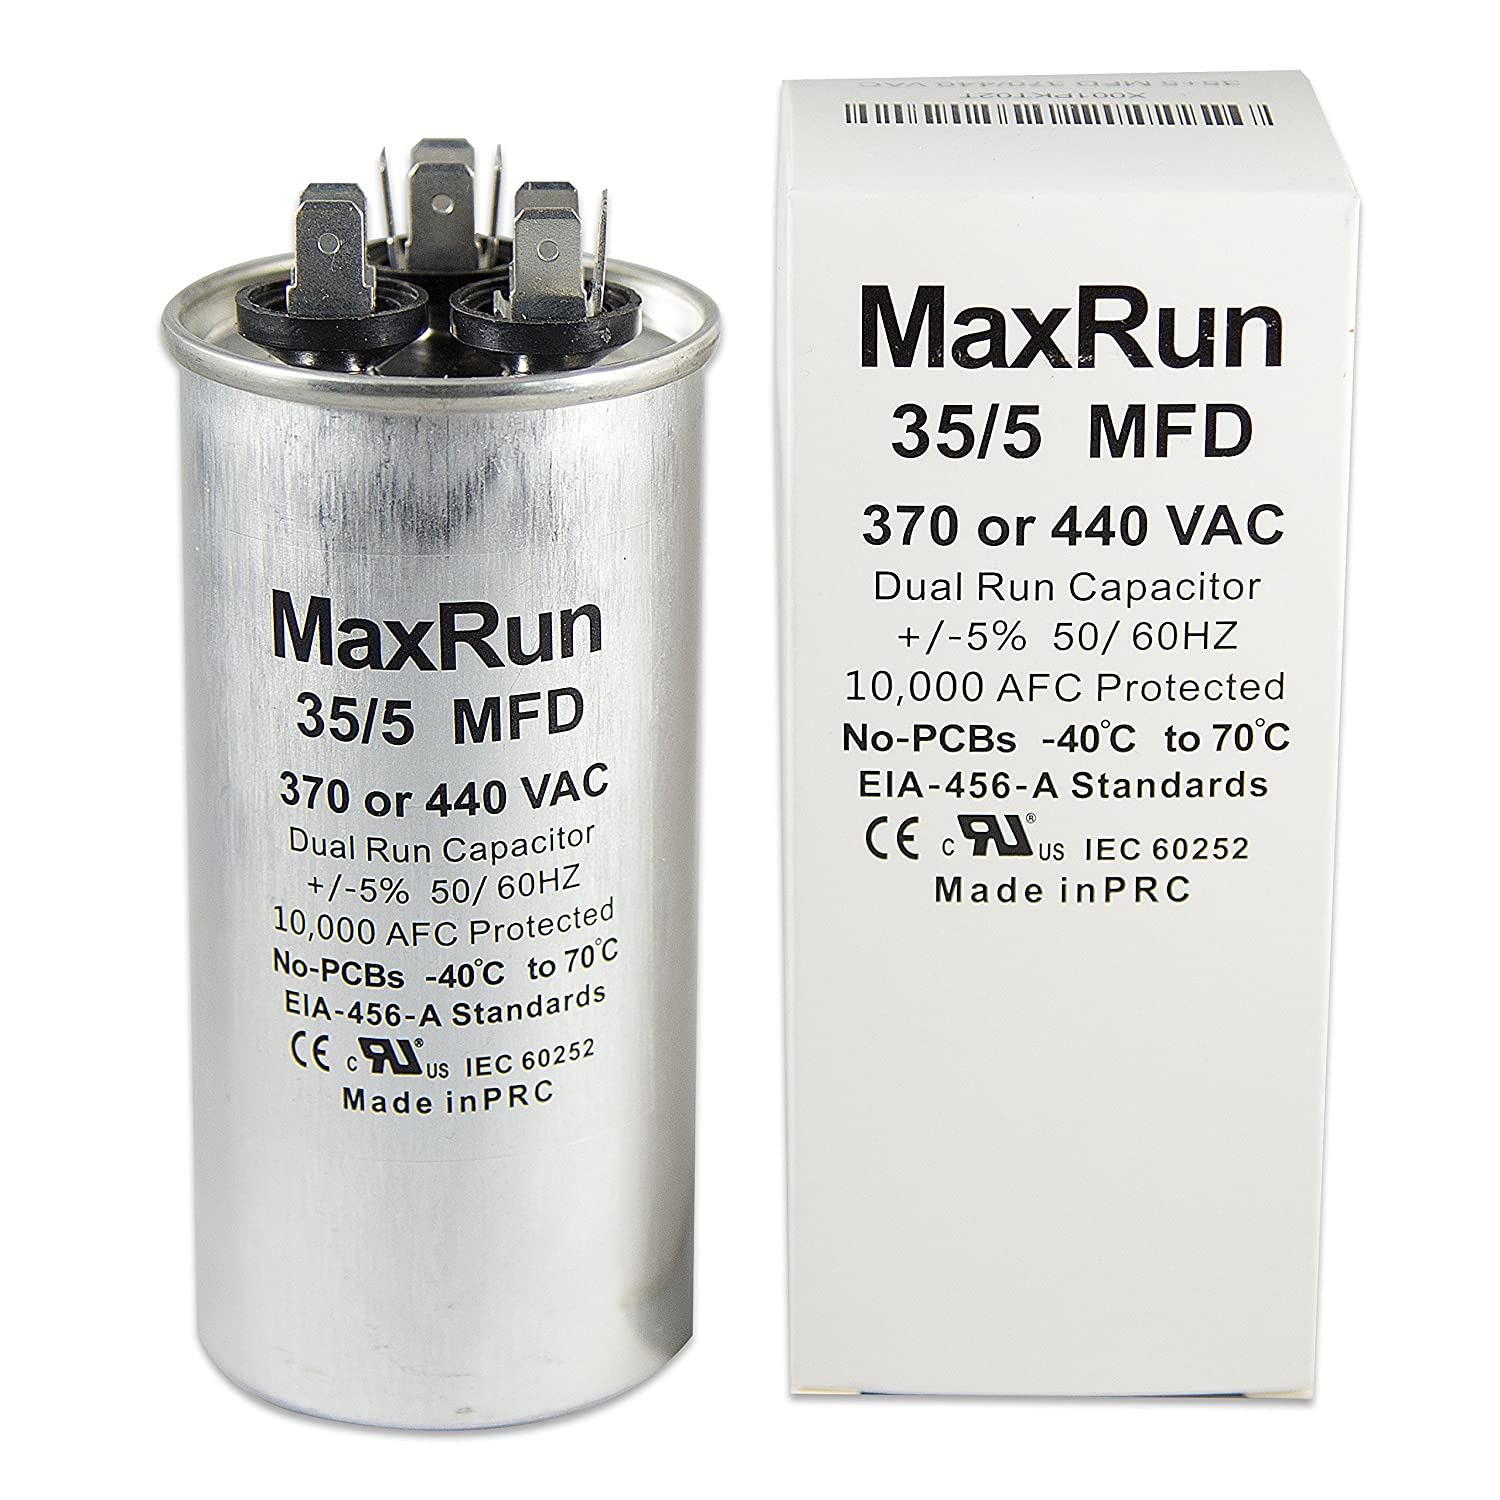 MAXRUN 35+5 MFD uf 370 or 440 Volt VAC Round Motor Dual Run Capacitor for AC Air Conditioner Condenser - 35/5 uf MFD 440V Straight Cool or Heat Pump - Will Run AC Motor and Fan